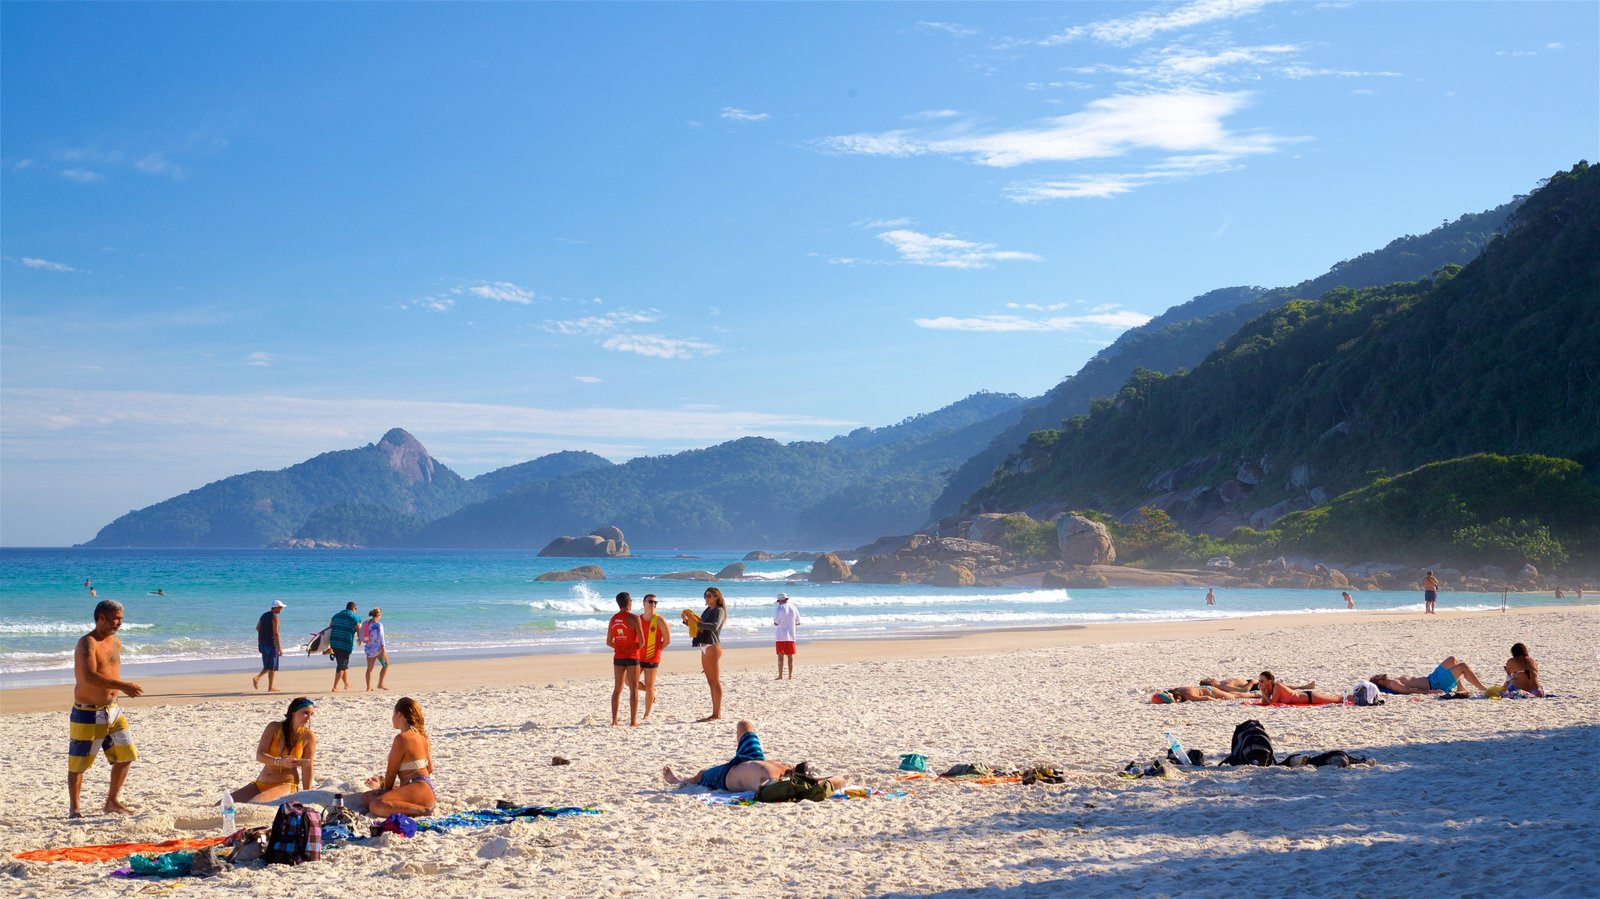 Lopes Mendes Beach which includes general coastal views and a sandy beach as well as a small group of people